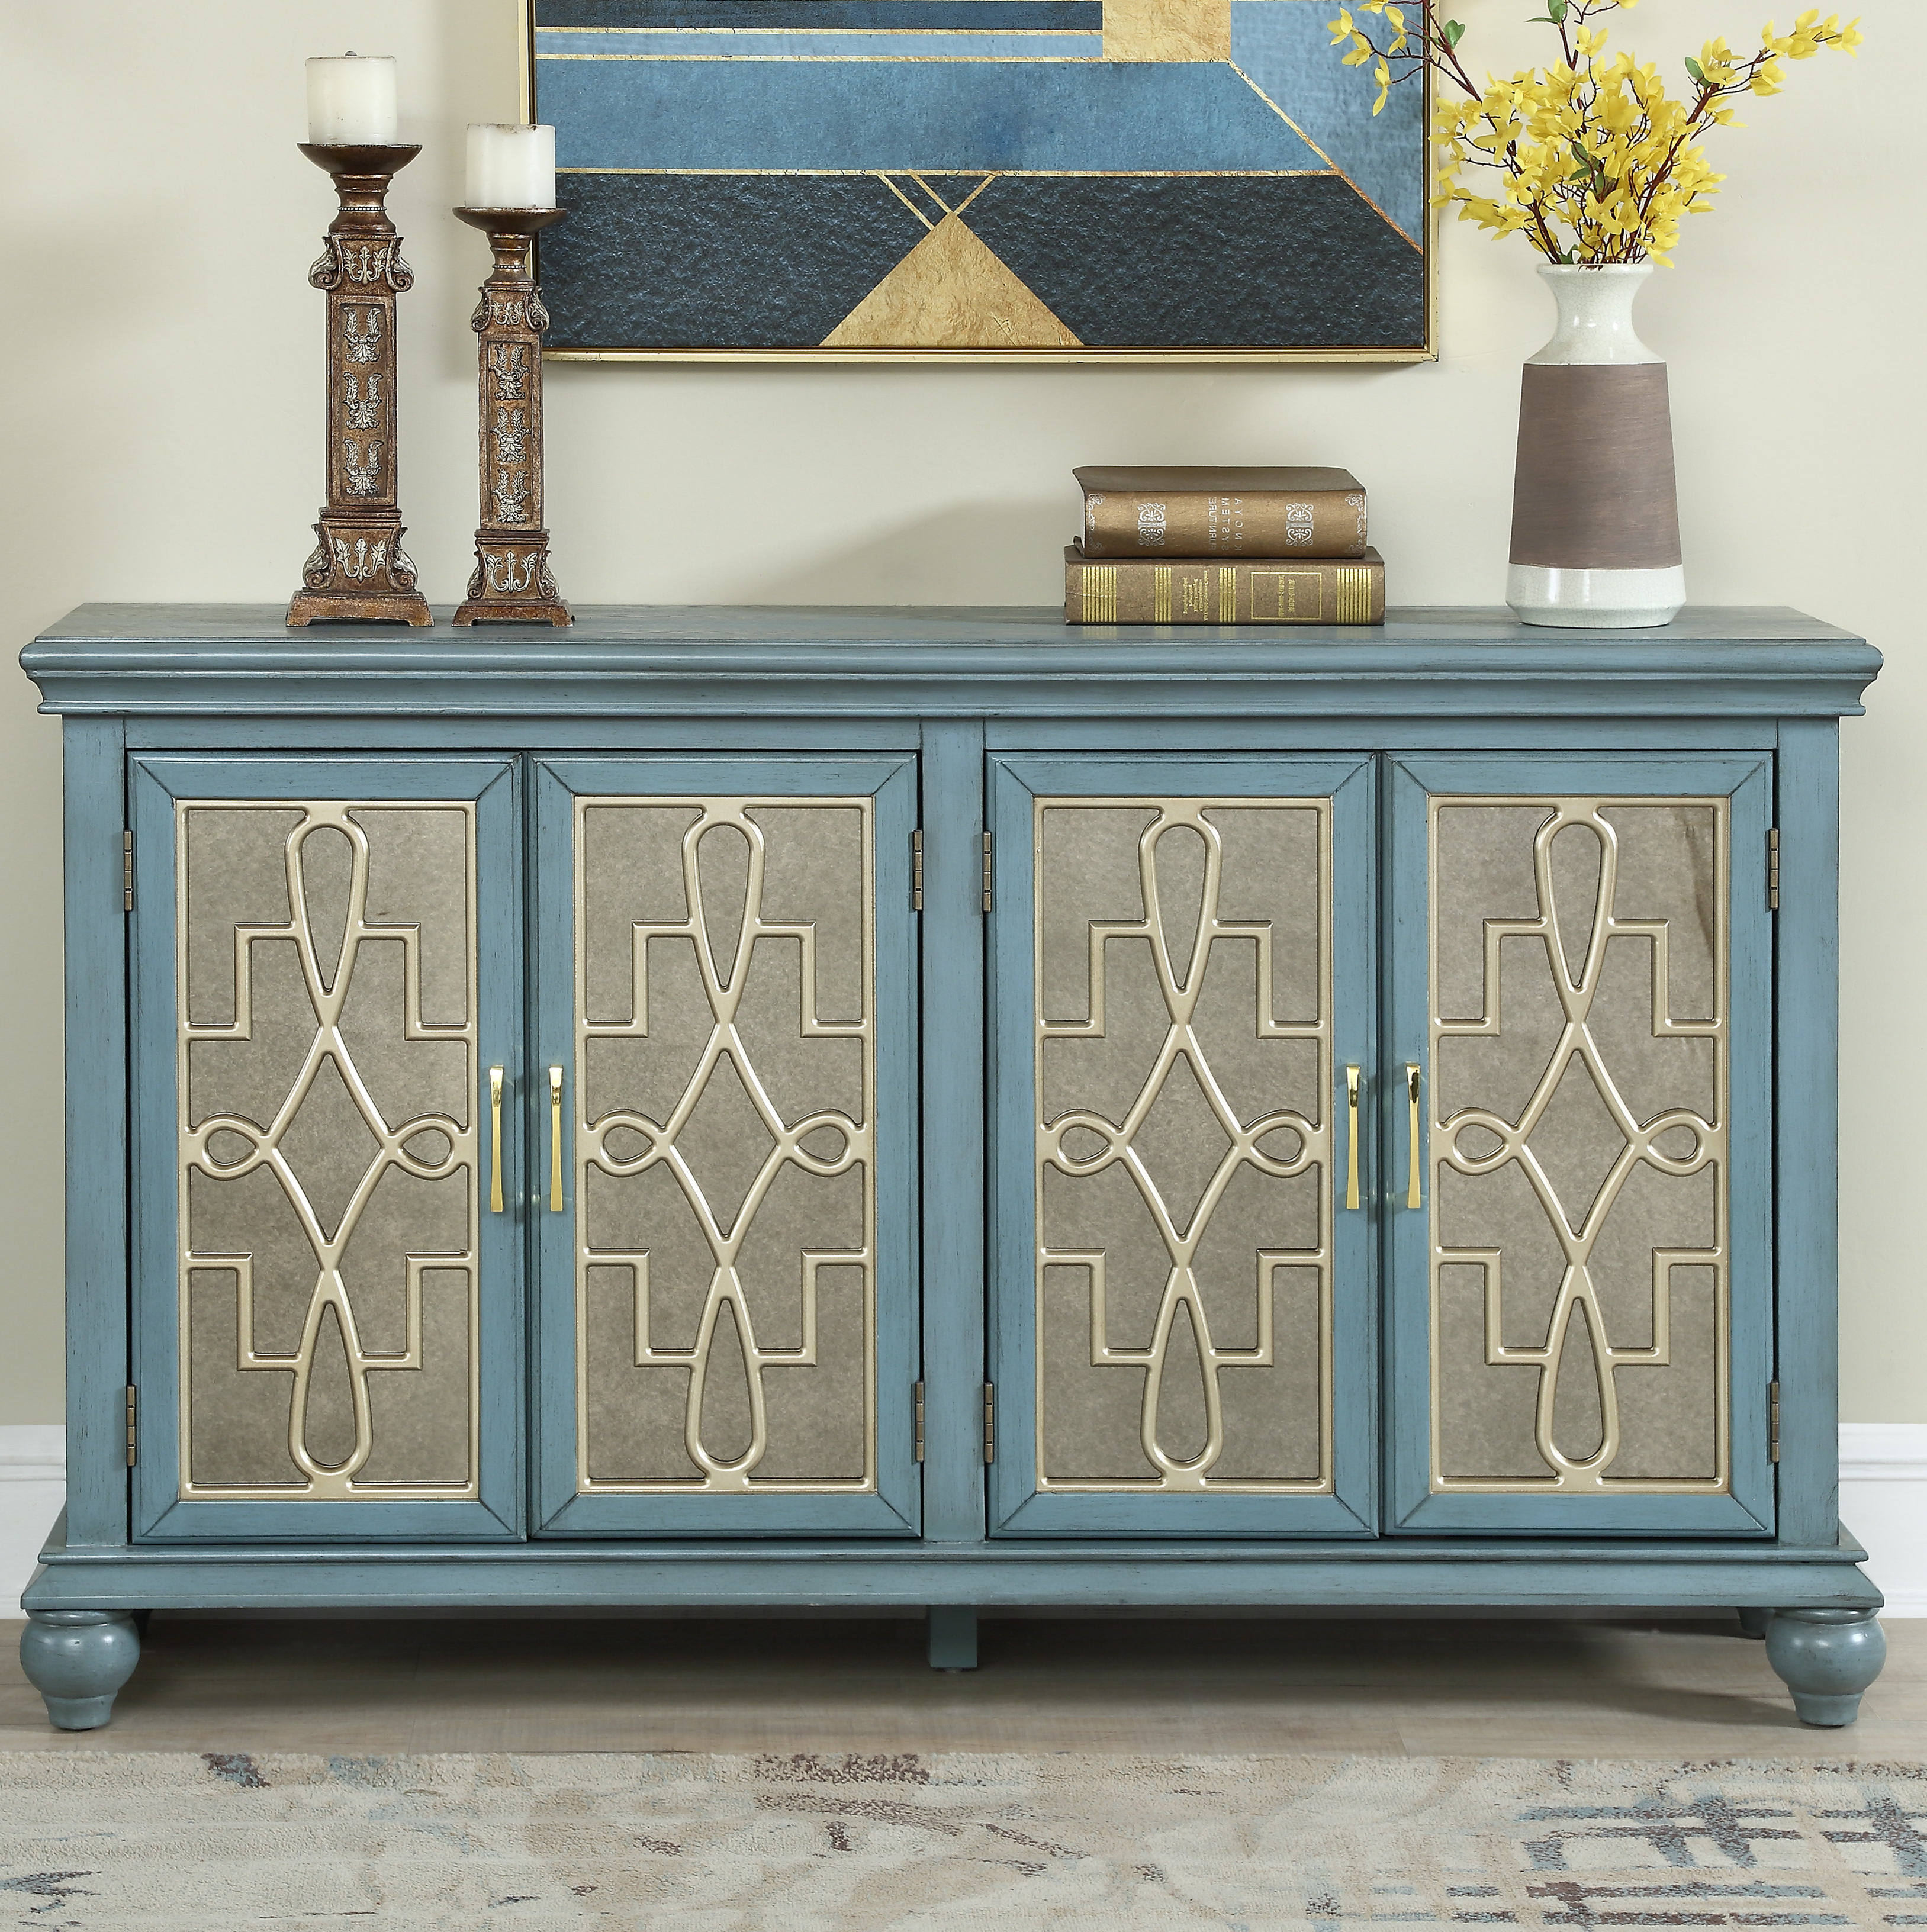 60 Inch Credenza | Wayfair Intended For Deana Credenzas (View 3 of 20)